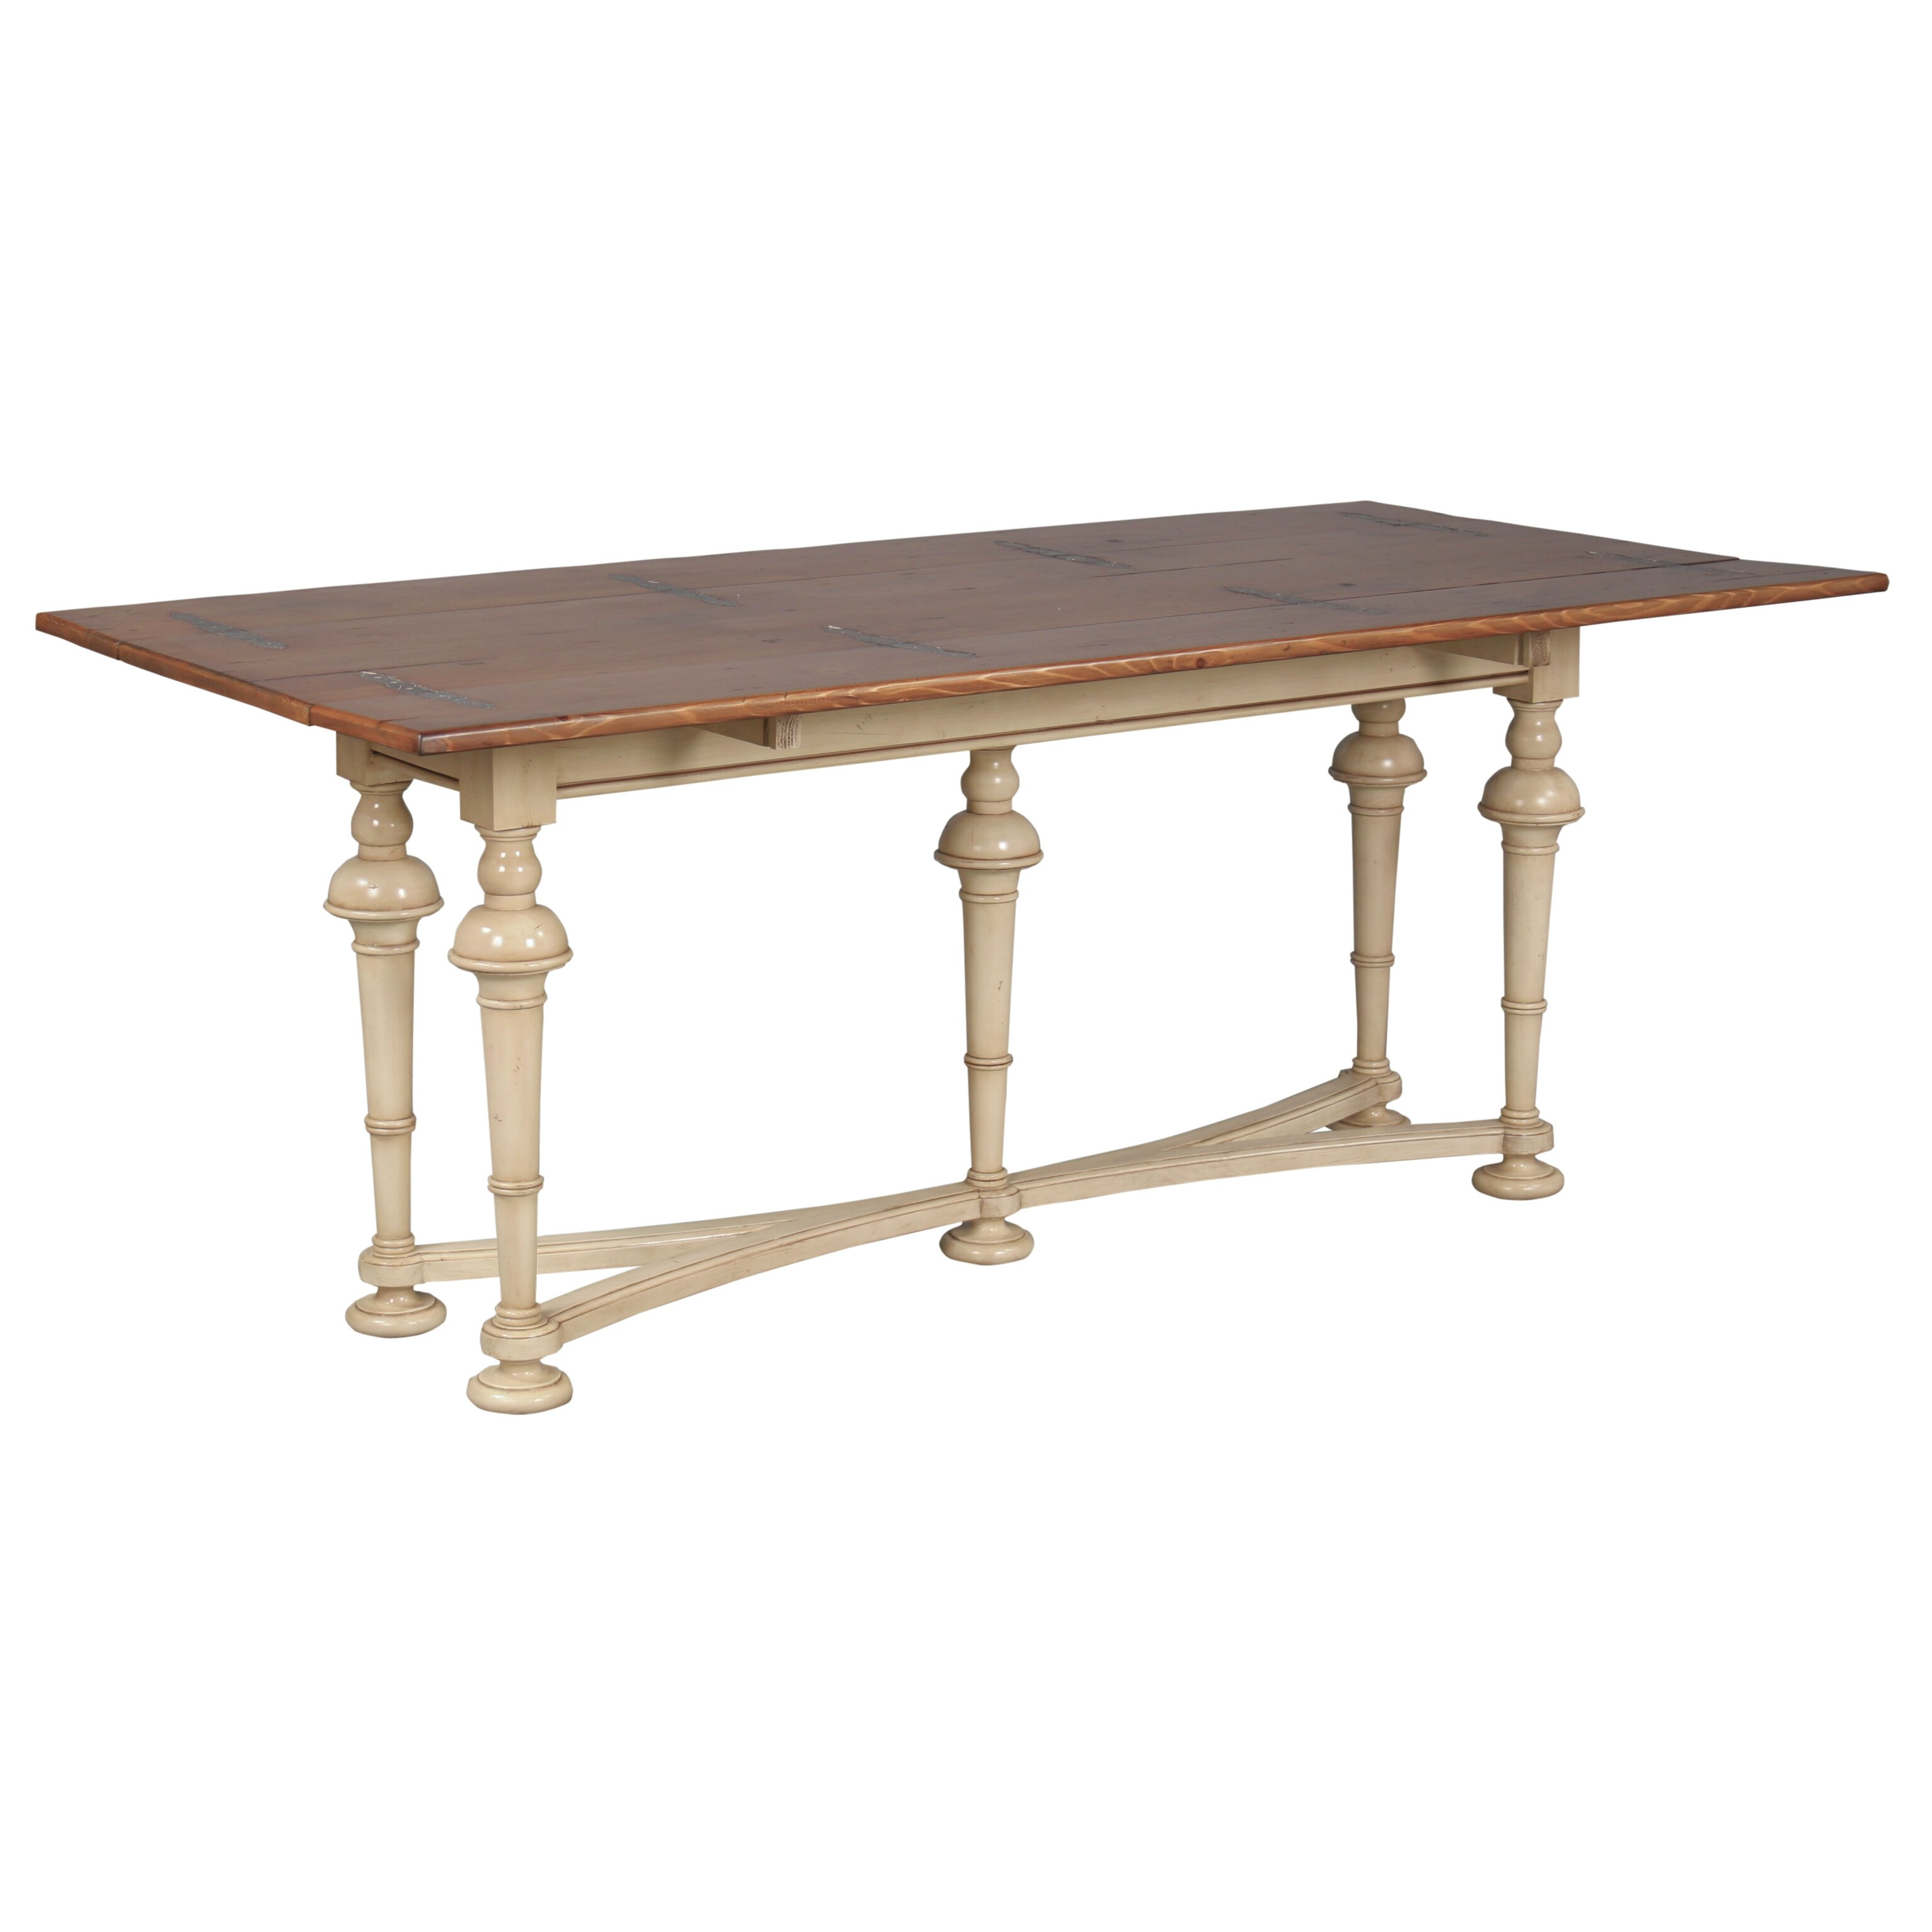 Furniture classics ltd dining table reviews wayfair supply for Wayfair dining table